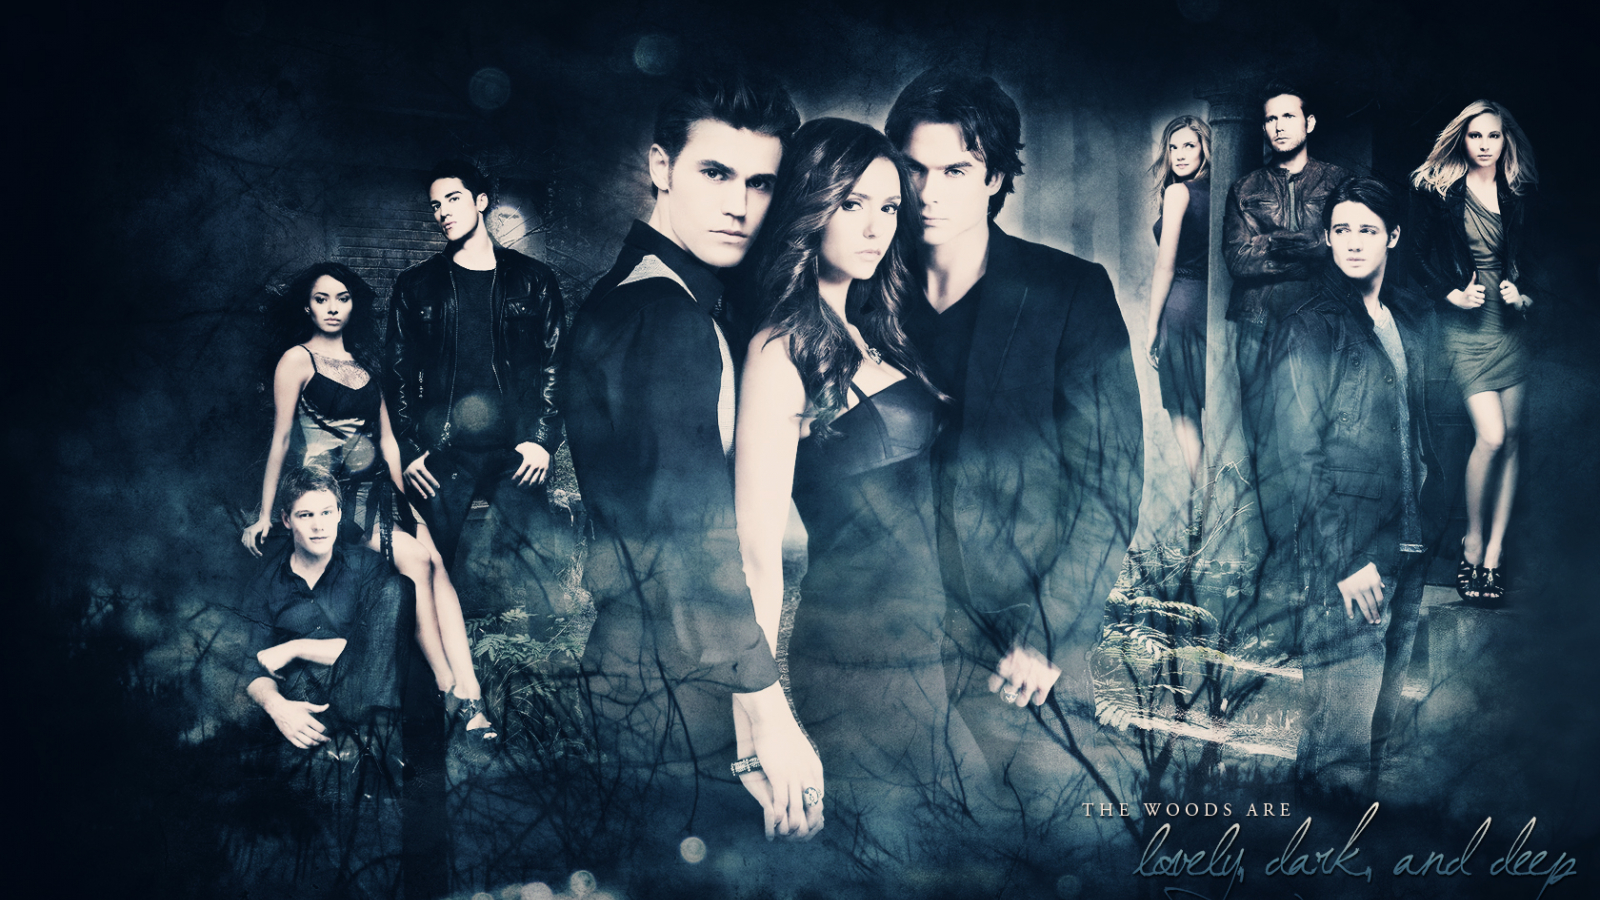 Free Download The Vampire Diaries The Vampire Diaries